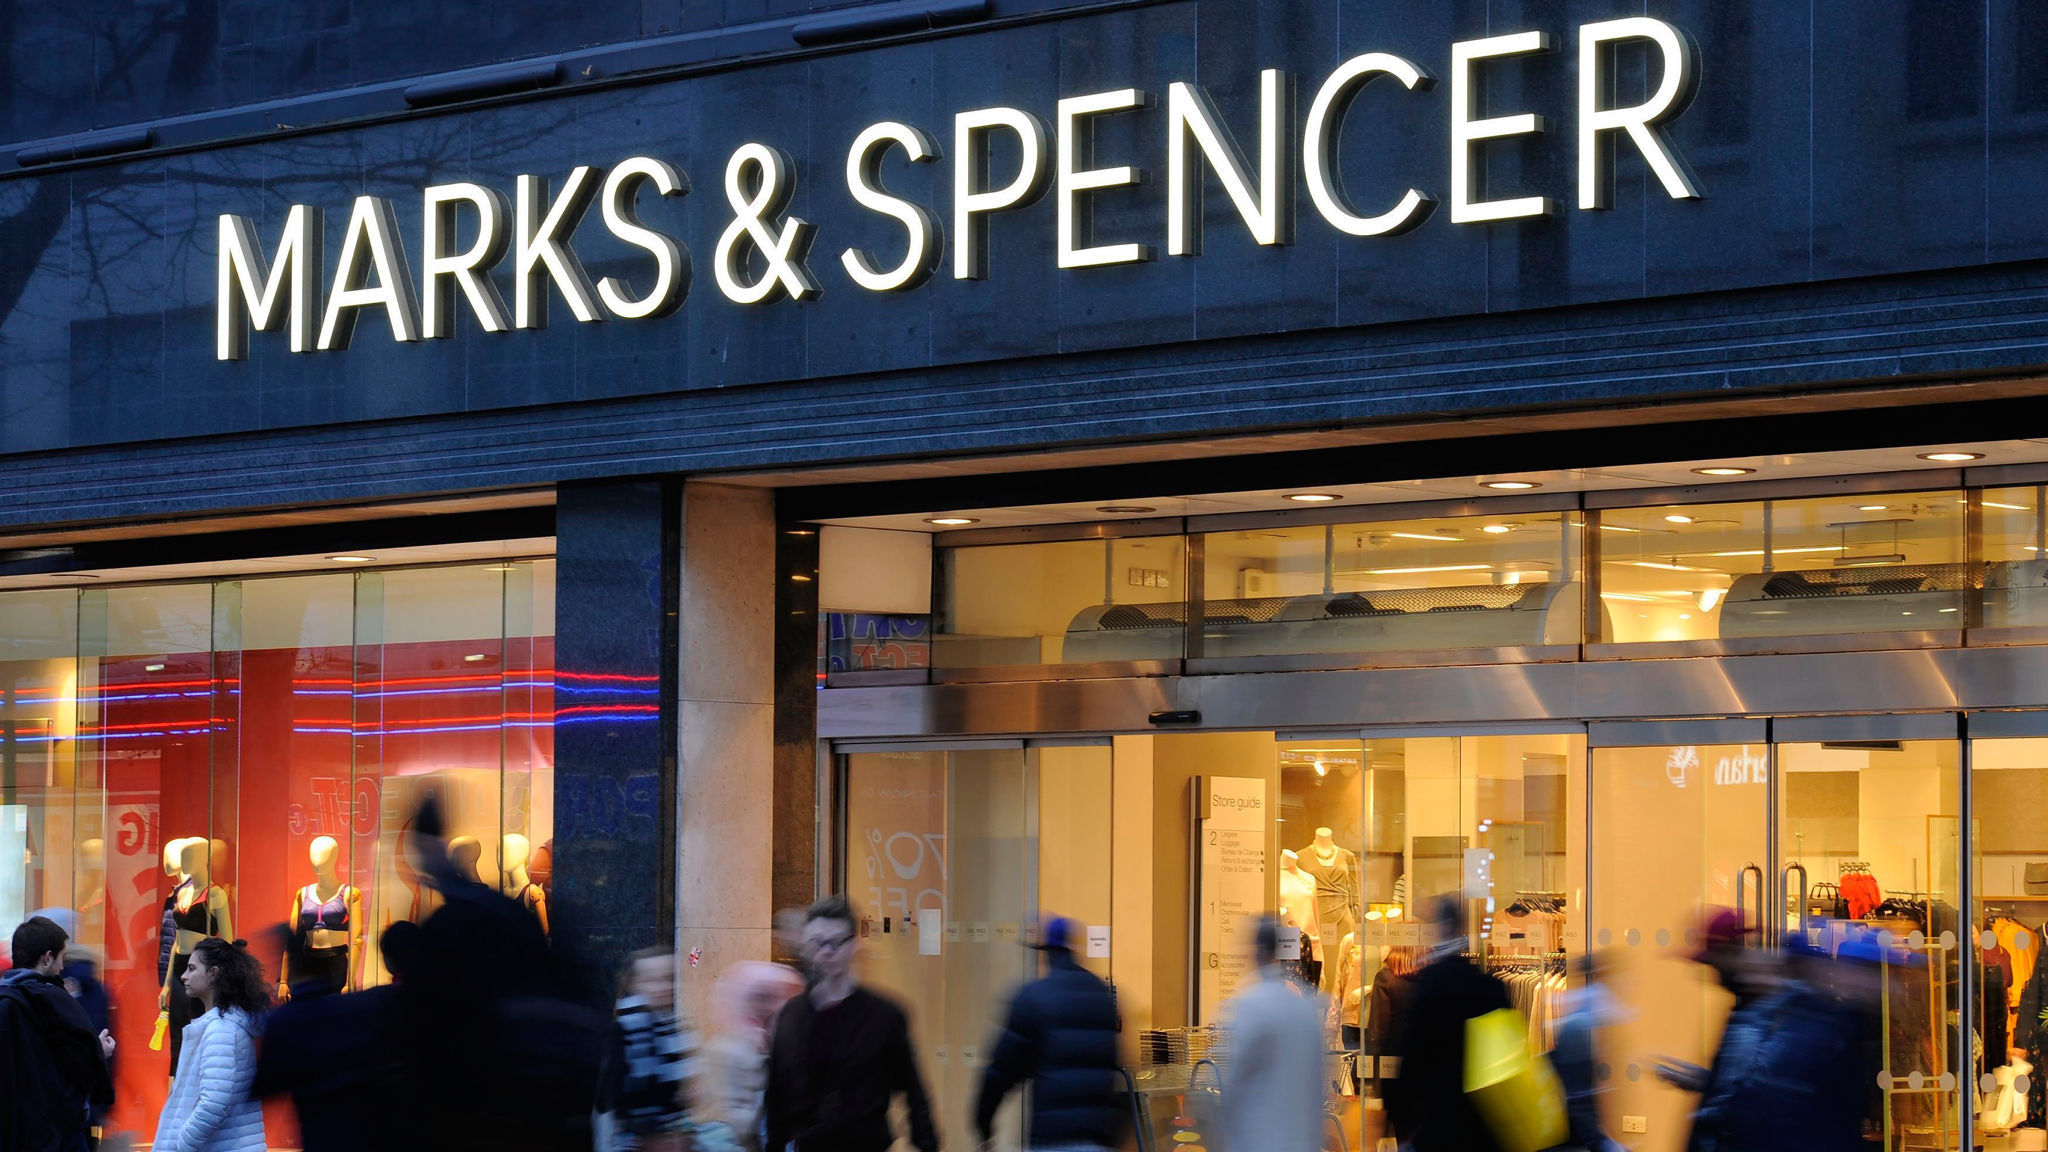 Marks and Spencer warns of 'little improvement' as sales fall